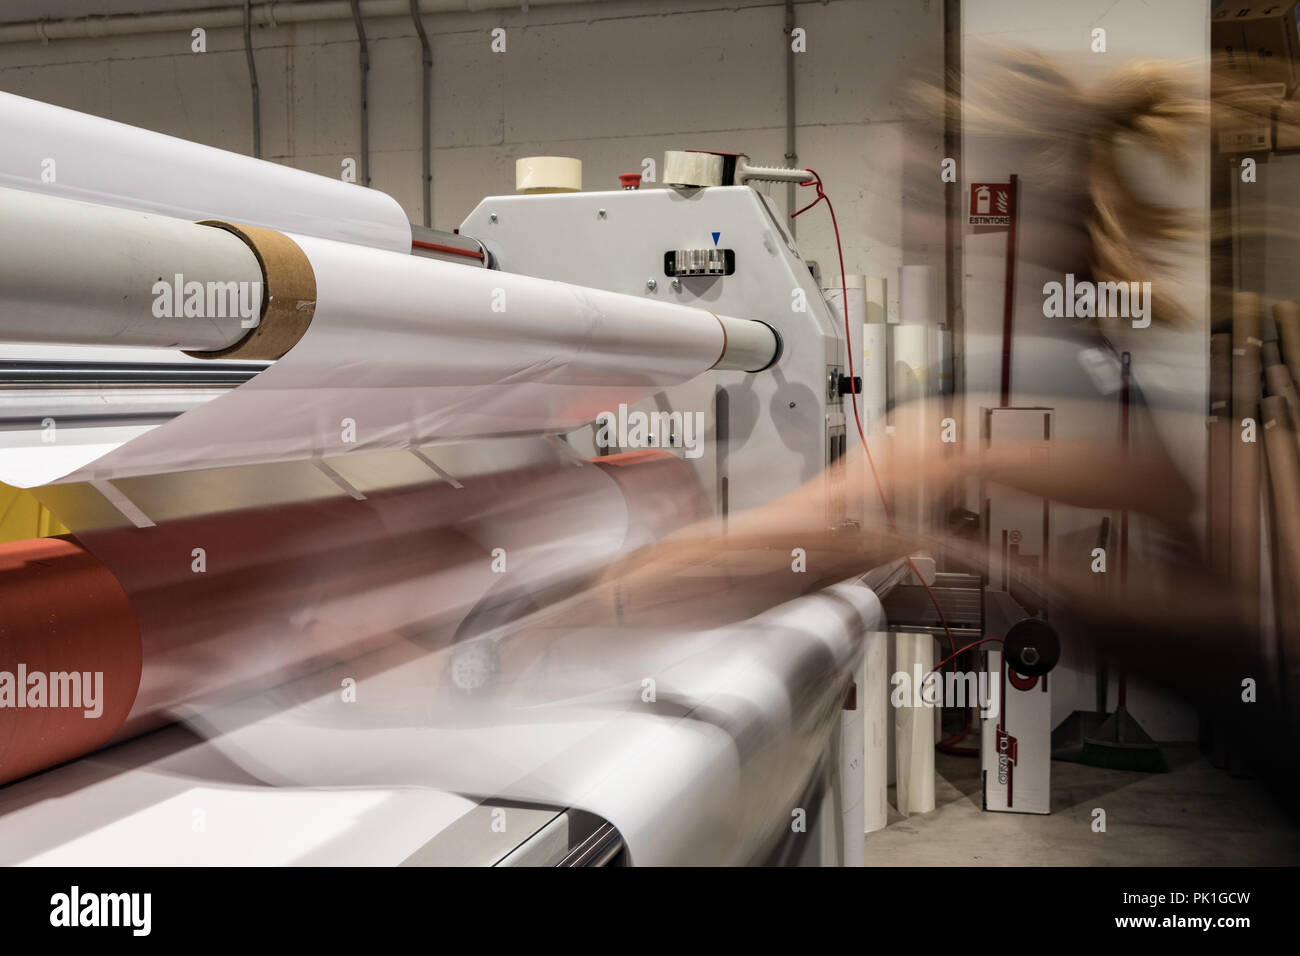 Big professional printing laminator, armed with large red rolls of glossy paper and smaller tubes of transparent film. - Stock Image